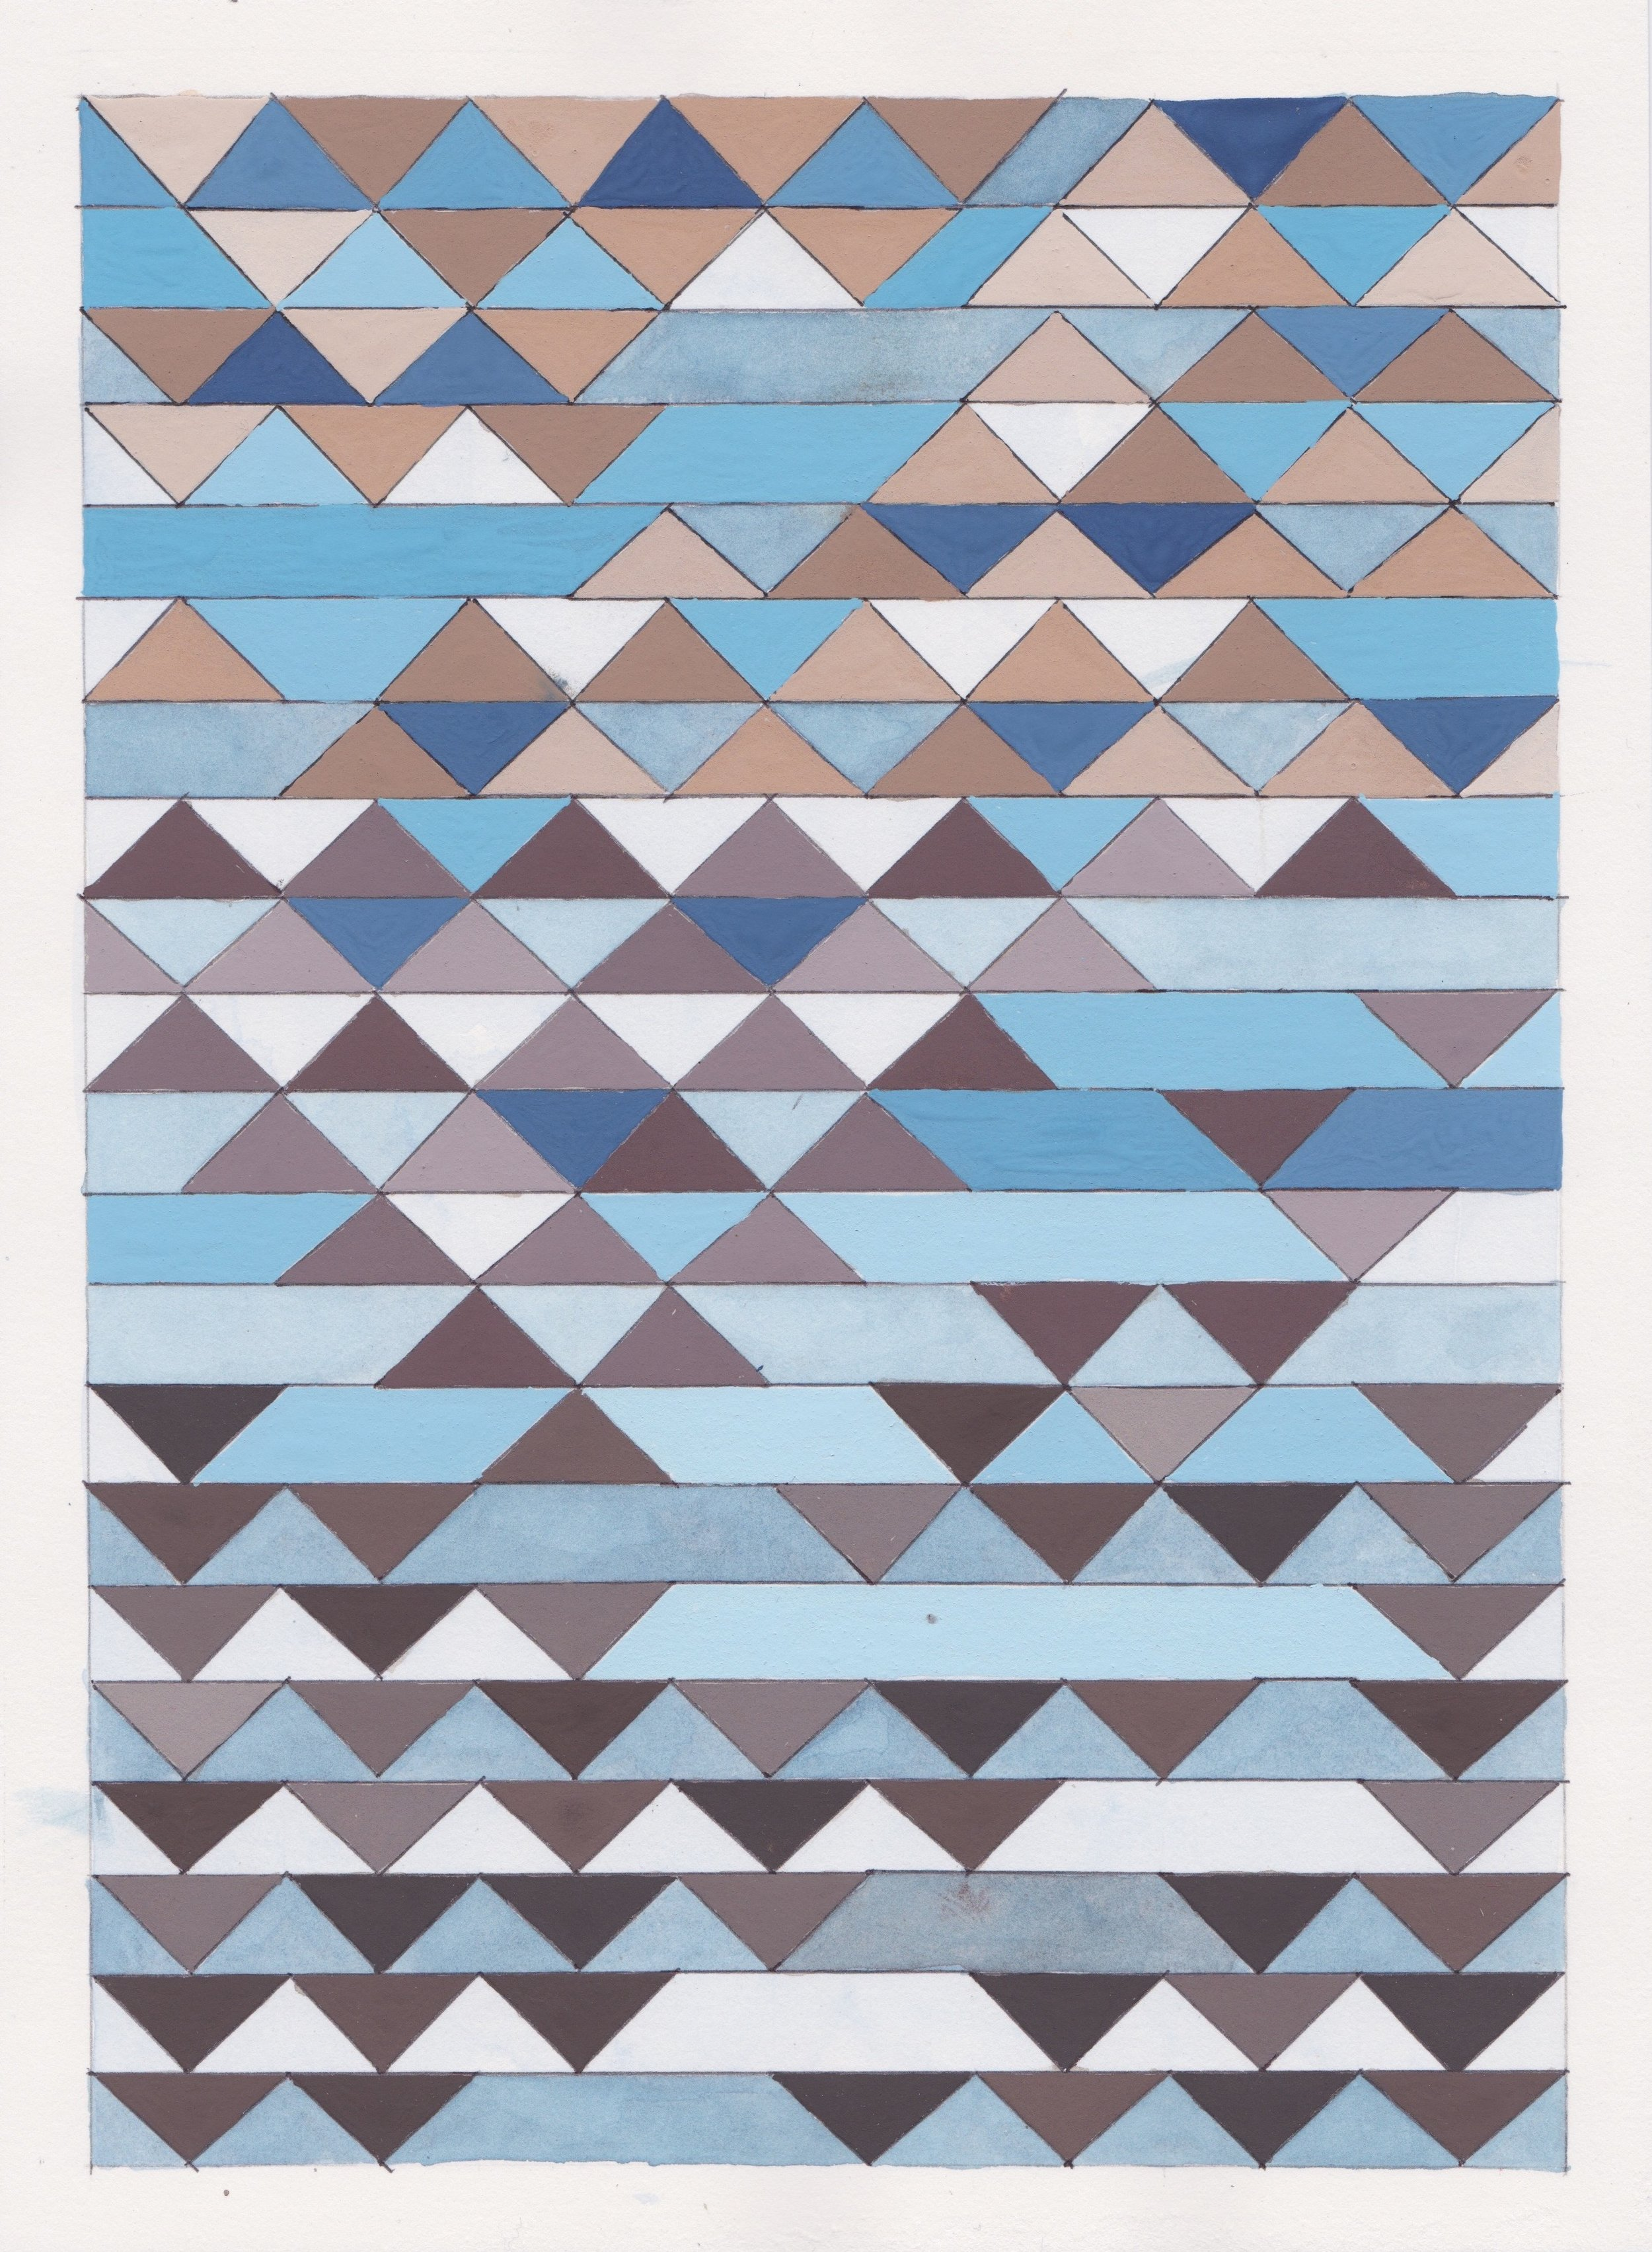 """Ephemeral Triangles no.6, 2016. Gouache, Watercolor + Ink on Paper. 11.5""""x8.5"""""""